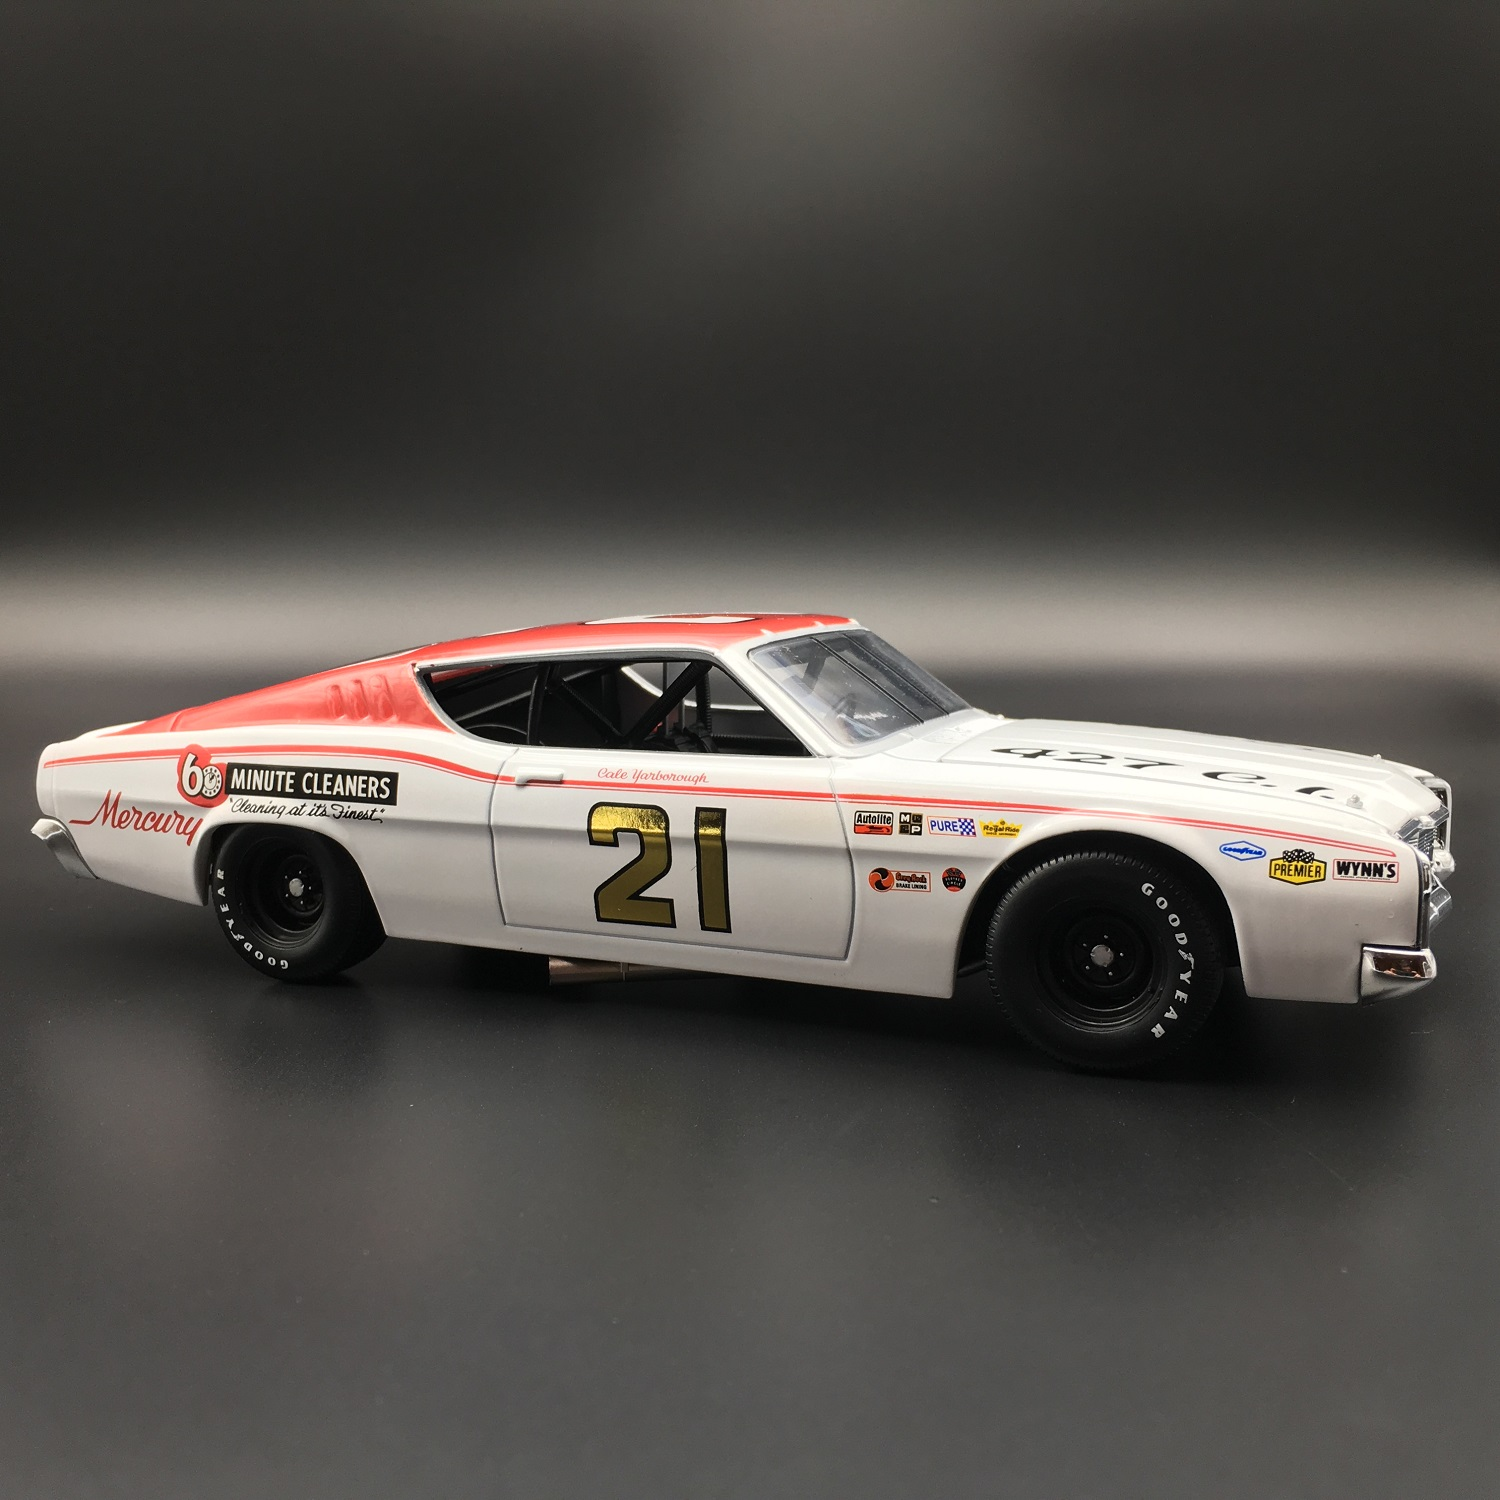 Cale Yarborough 1968 60 Minute Cleaners Mercury Cyclone Signed 1:24 University Of Racing Diecast